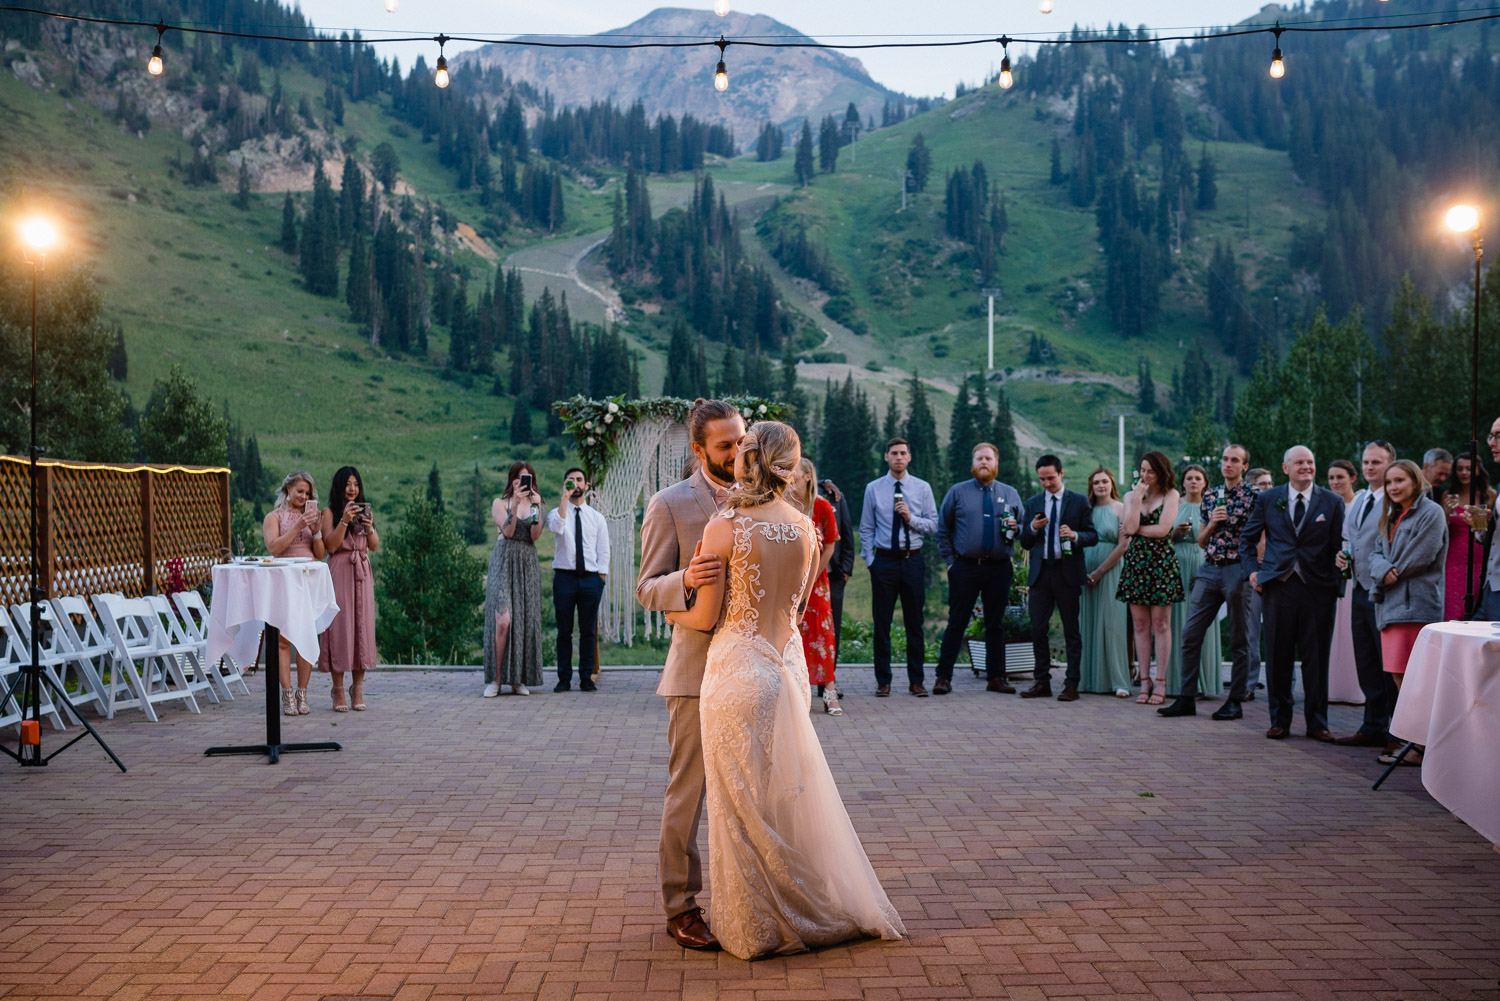 bride and groom first dance outside mountain scene alta